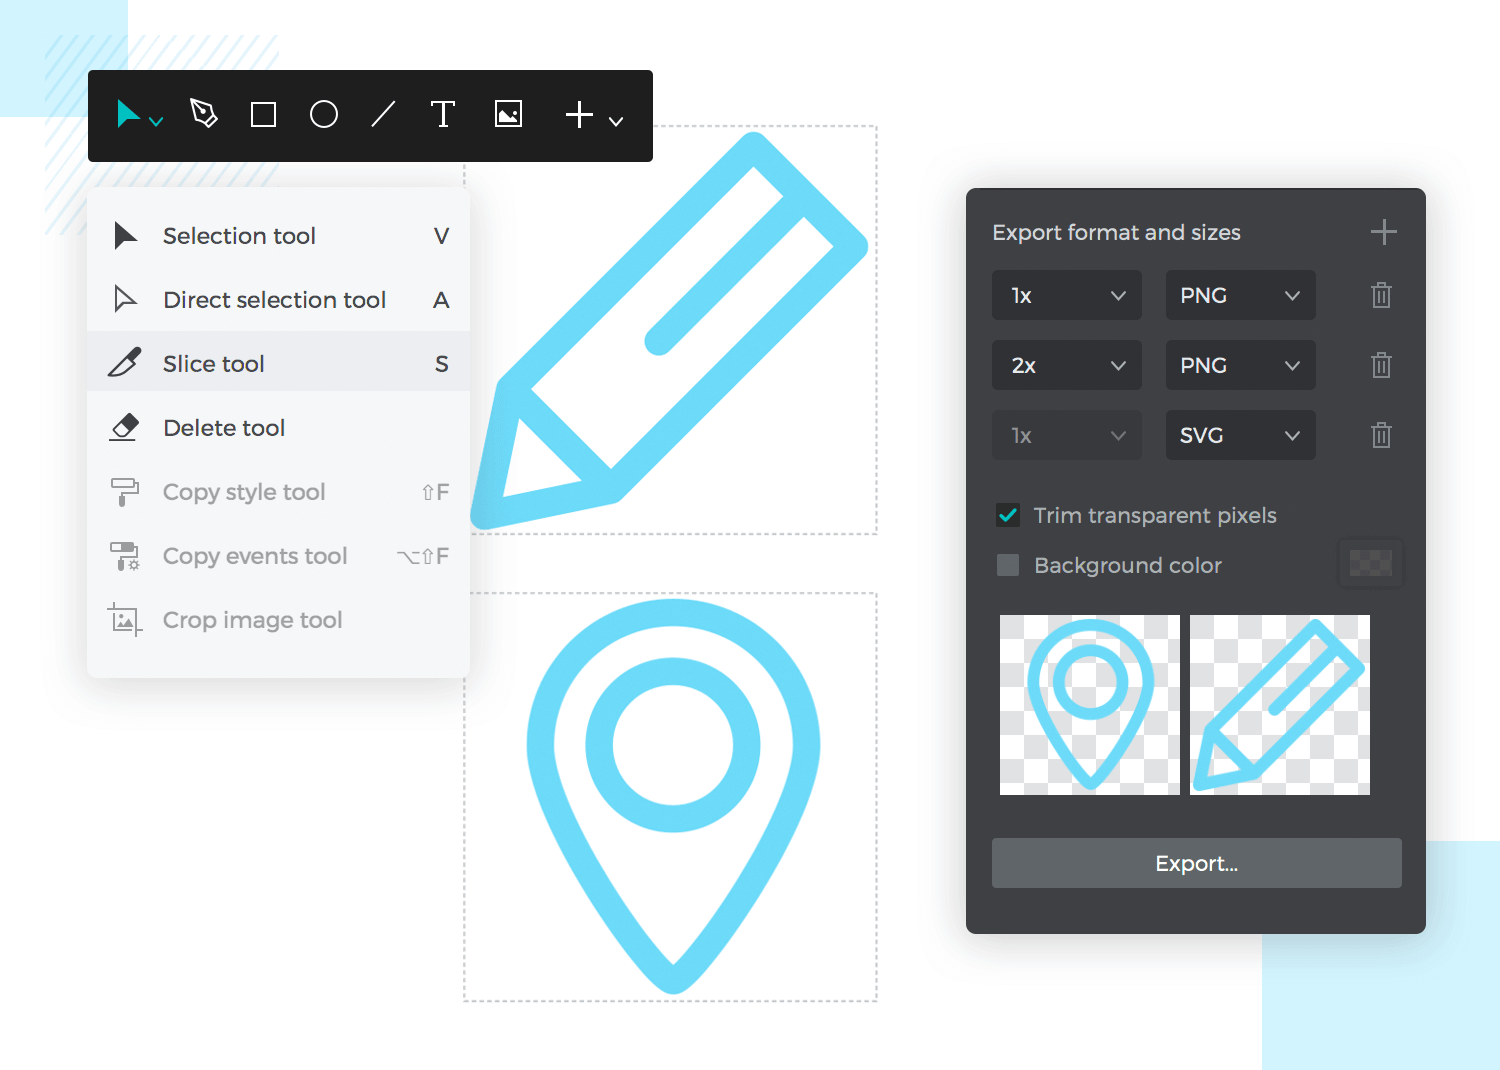 showing the slices feature of asset exportation